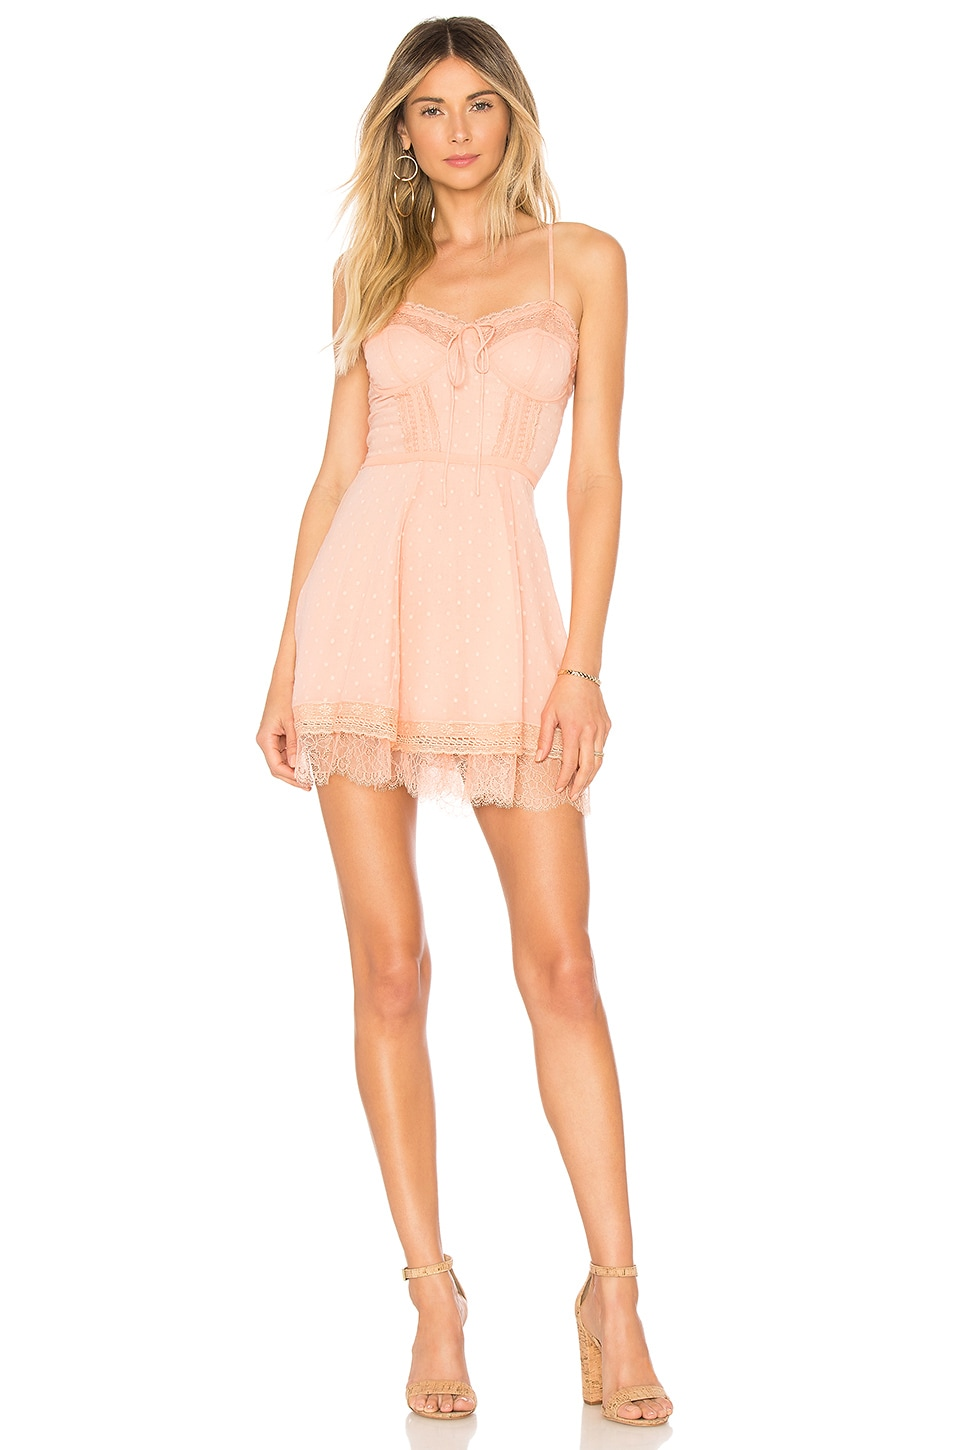 Cleobella Aliyah Dress in Pastel Coral